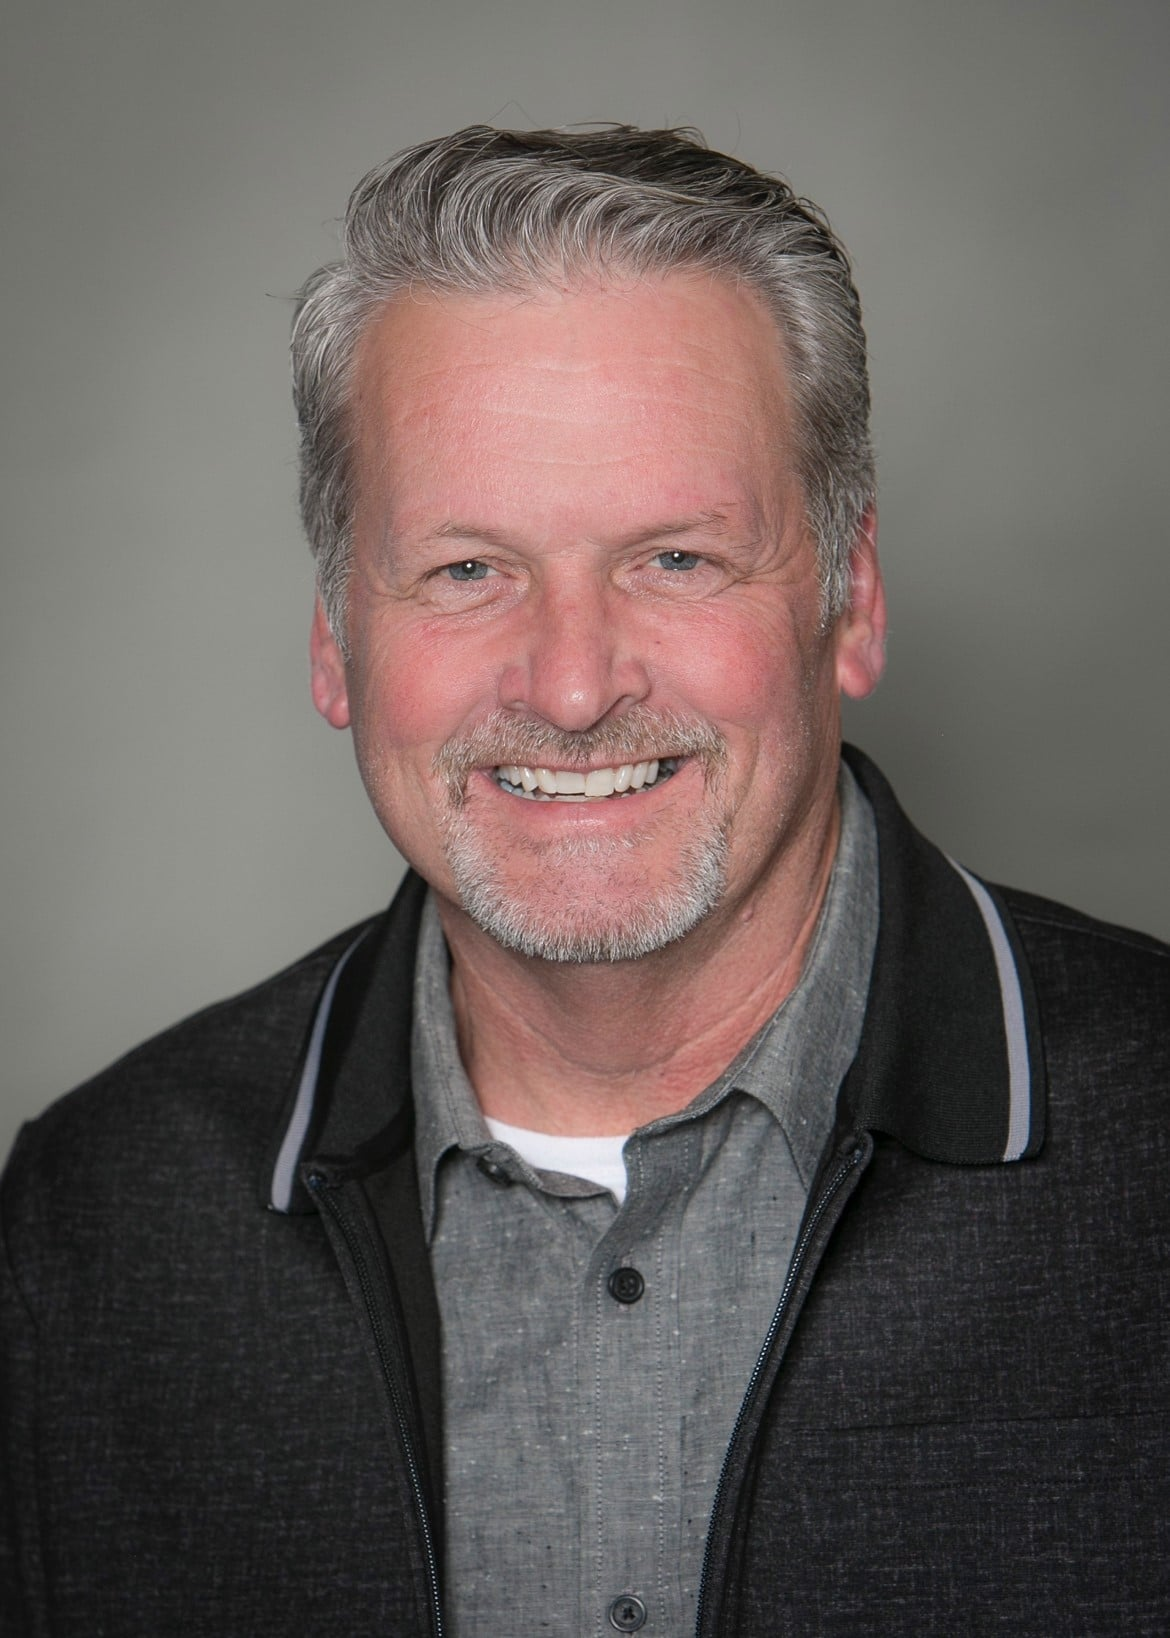 Headshot of Mark Balsano wearing gray collared shirt under windbreaker